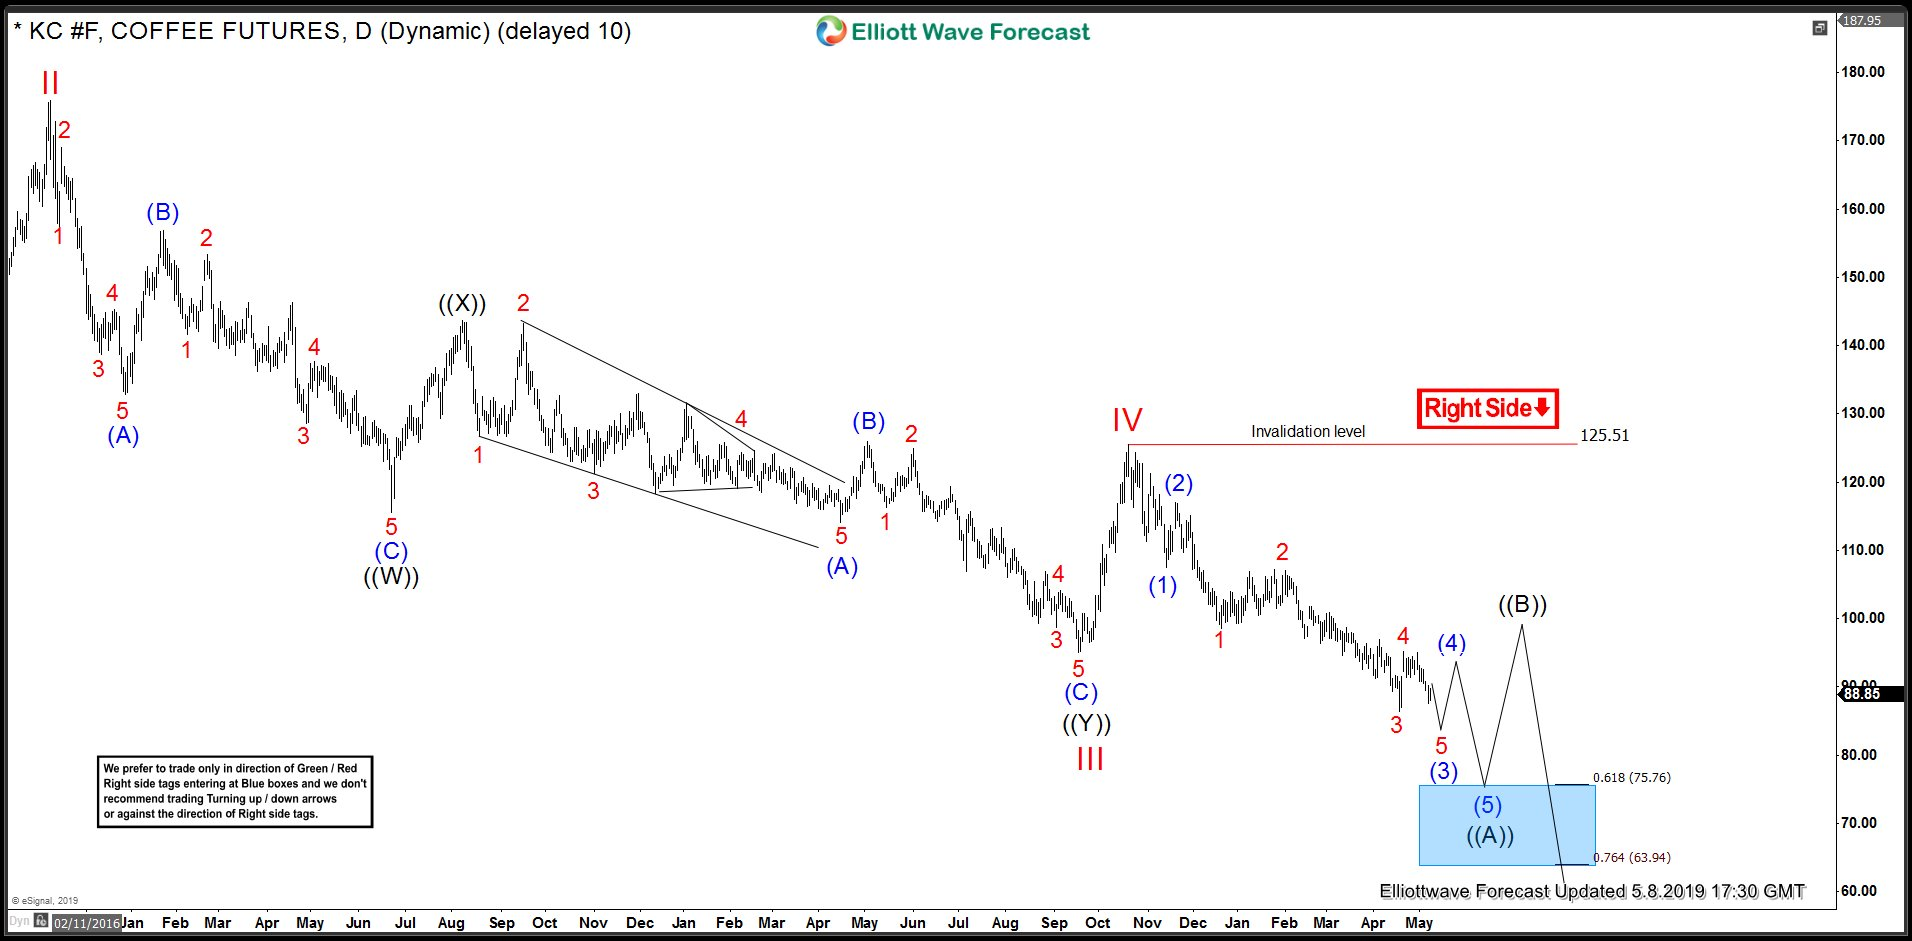 KC_F (Coffee) Daily Elliott Wave Analysis